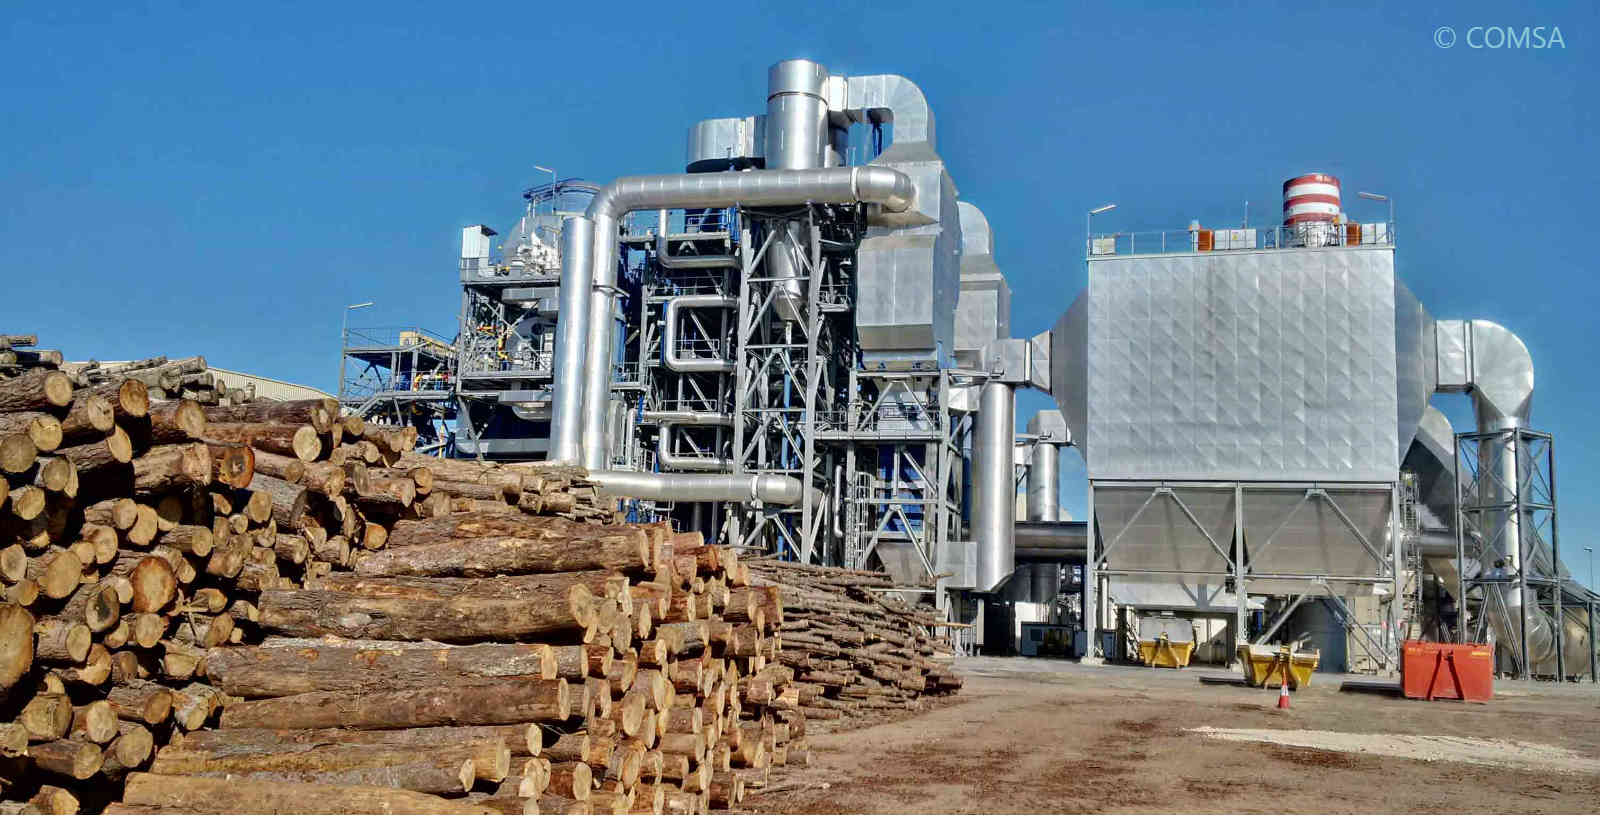 FIRST_HYBRID_SOLAR_BIOMASS_Les_Borges_Blanques_IDOM_COMSA_3